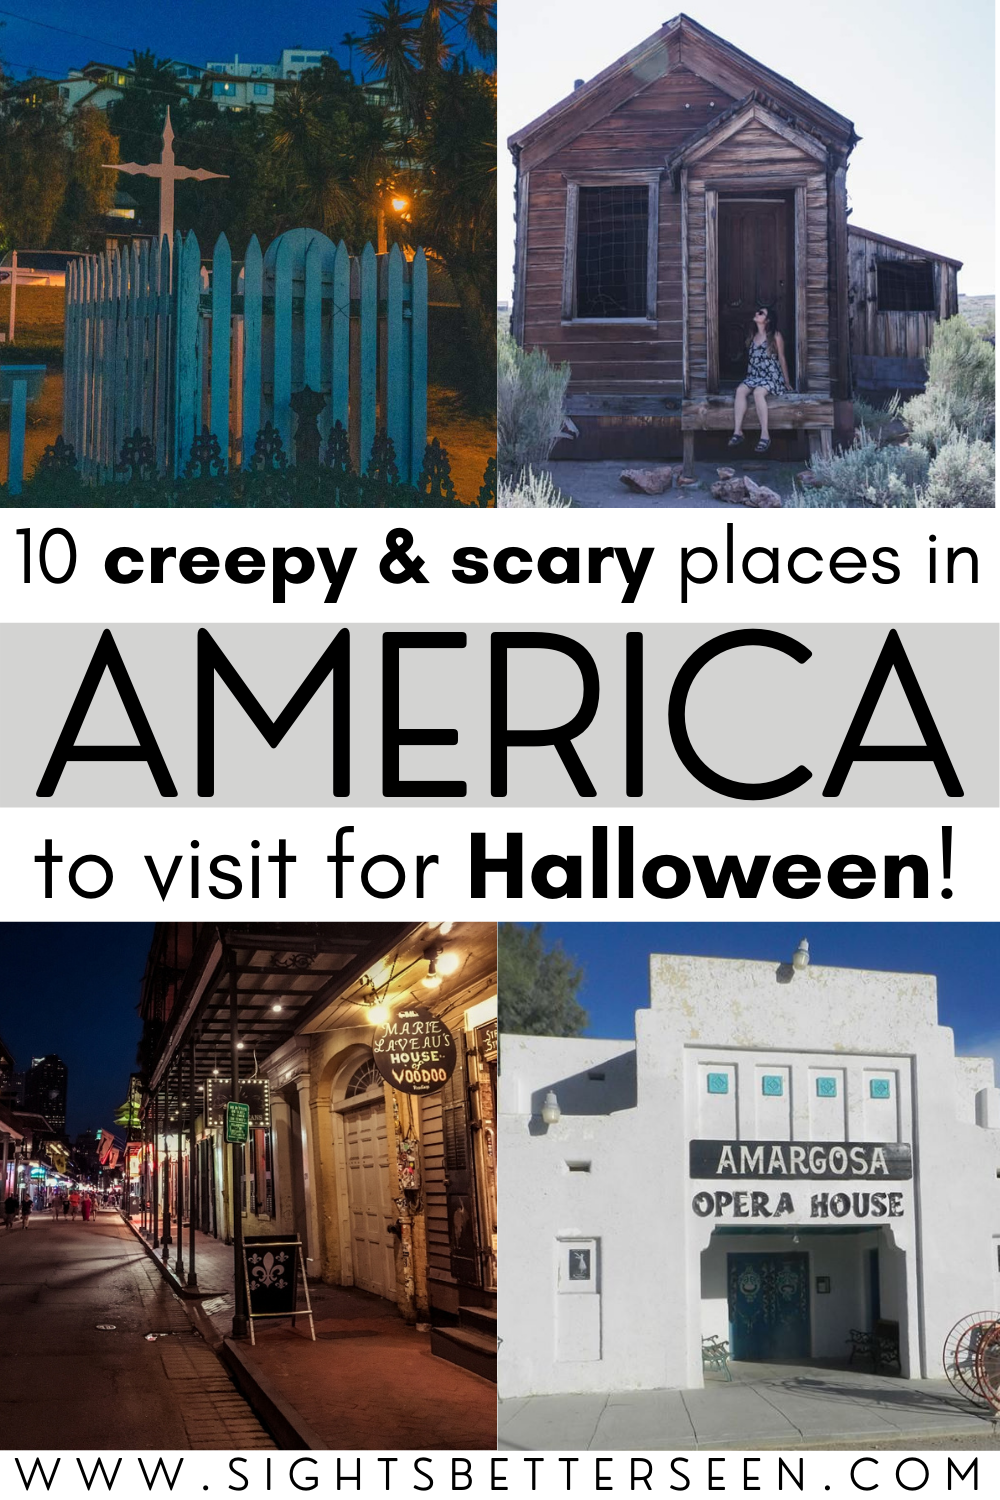 """4 images of a grave, an old house, a dark street, and a white opera house with text that says """"10 Creepy & Scary Places in America to Visit for Halloween"""""""